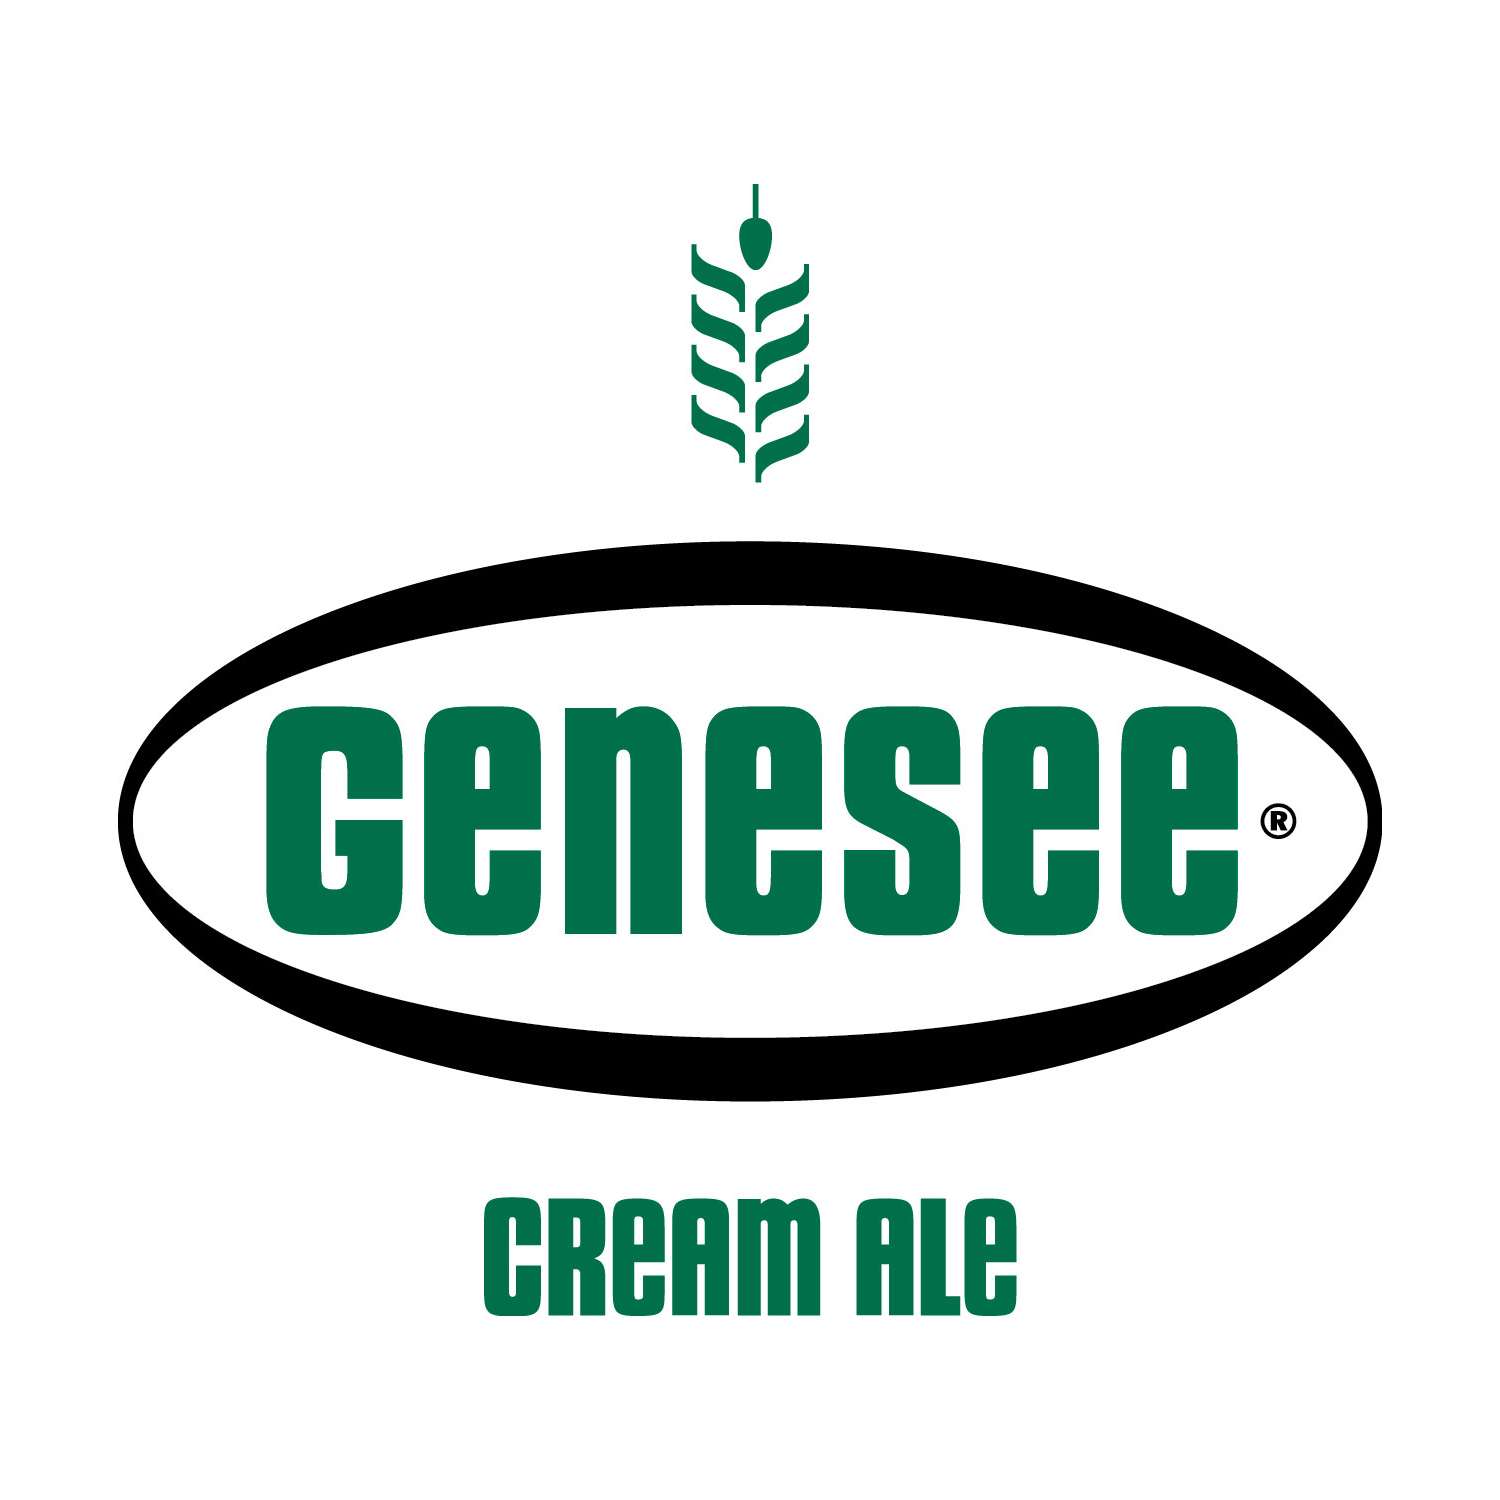 Genesee Cream Ale